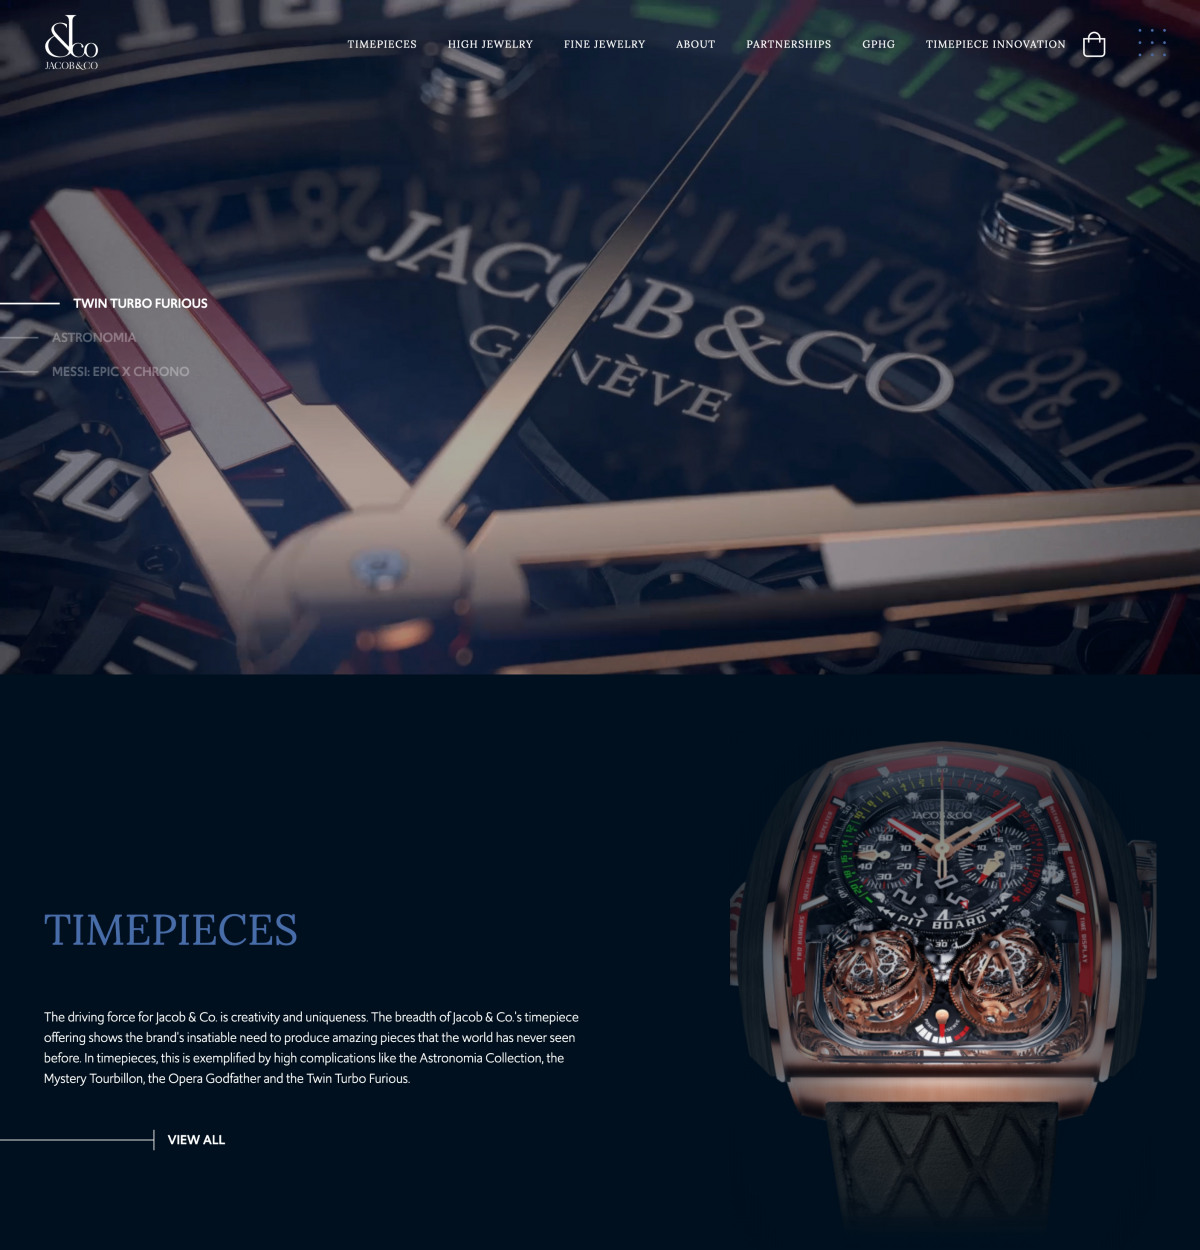 Image of website for Jacob & Co